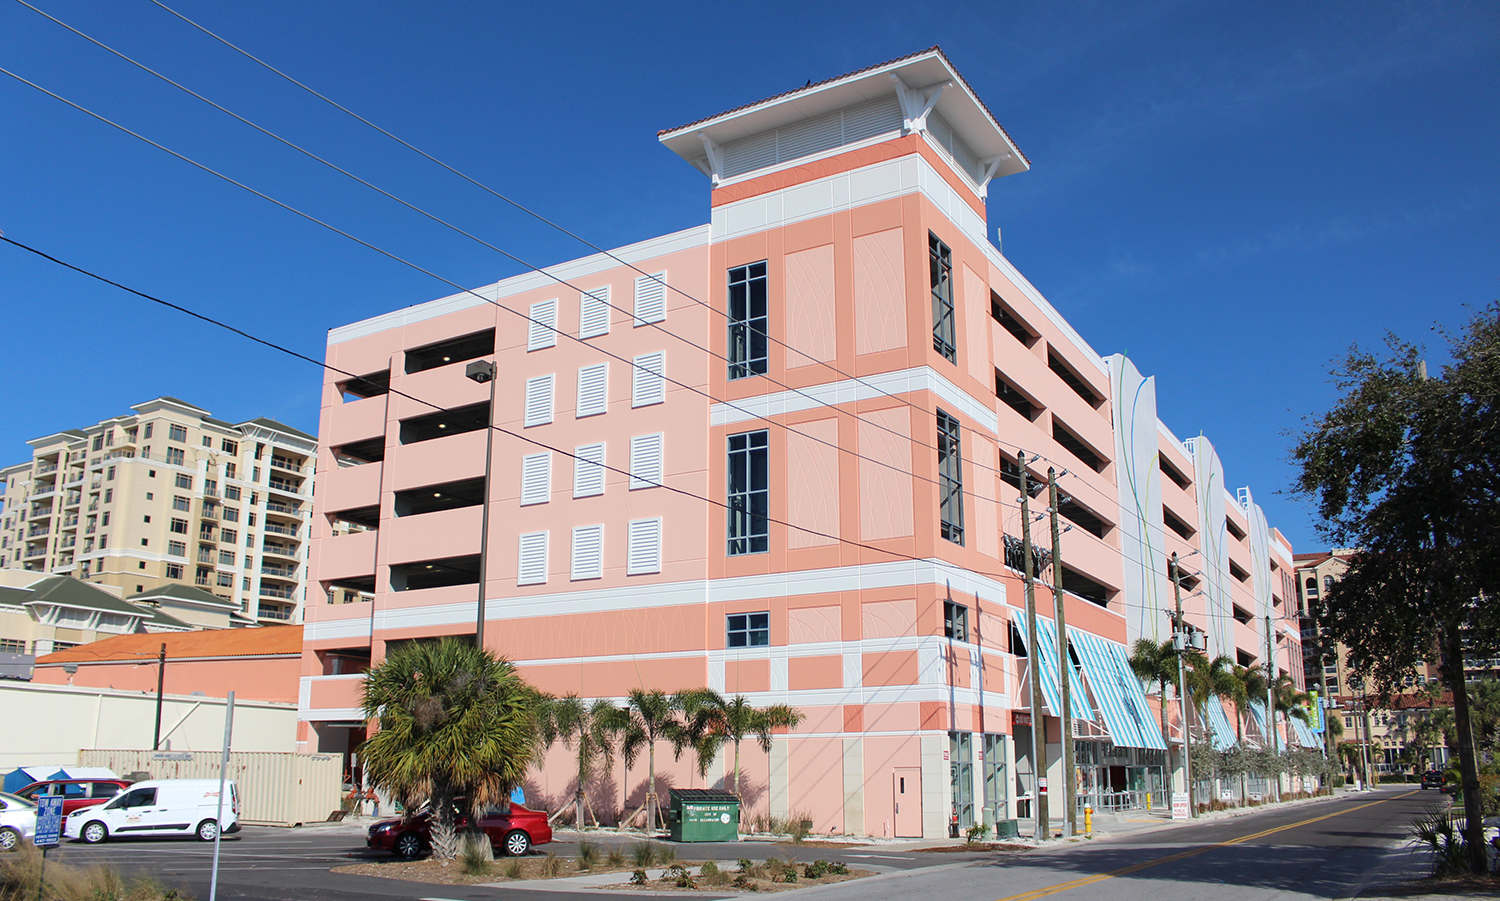 North Beach Parking Plaza Offers Premier Retail Space On Clearwater Beach, FL